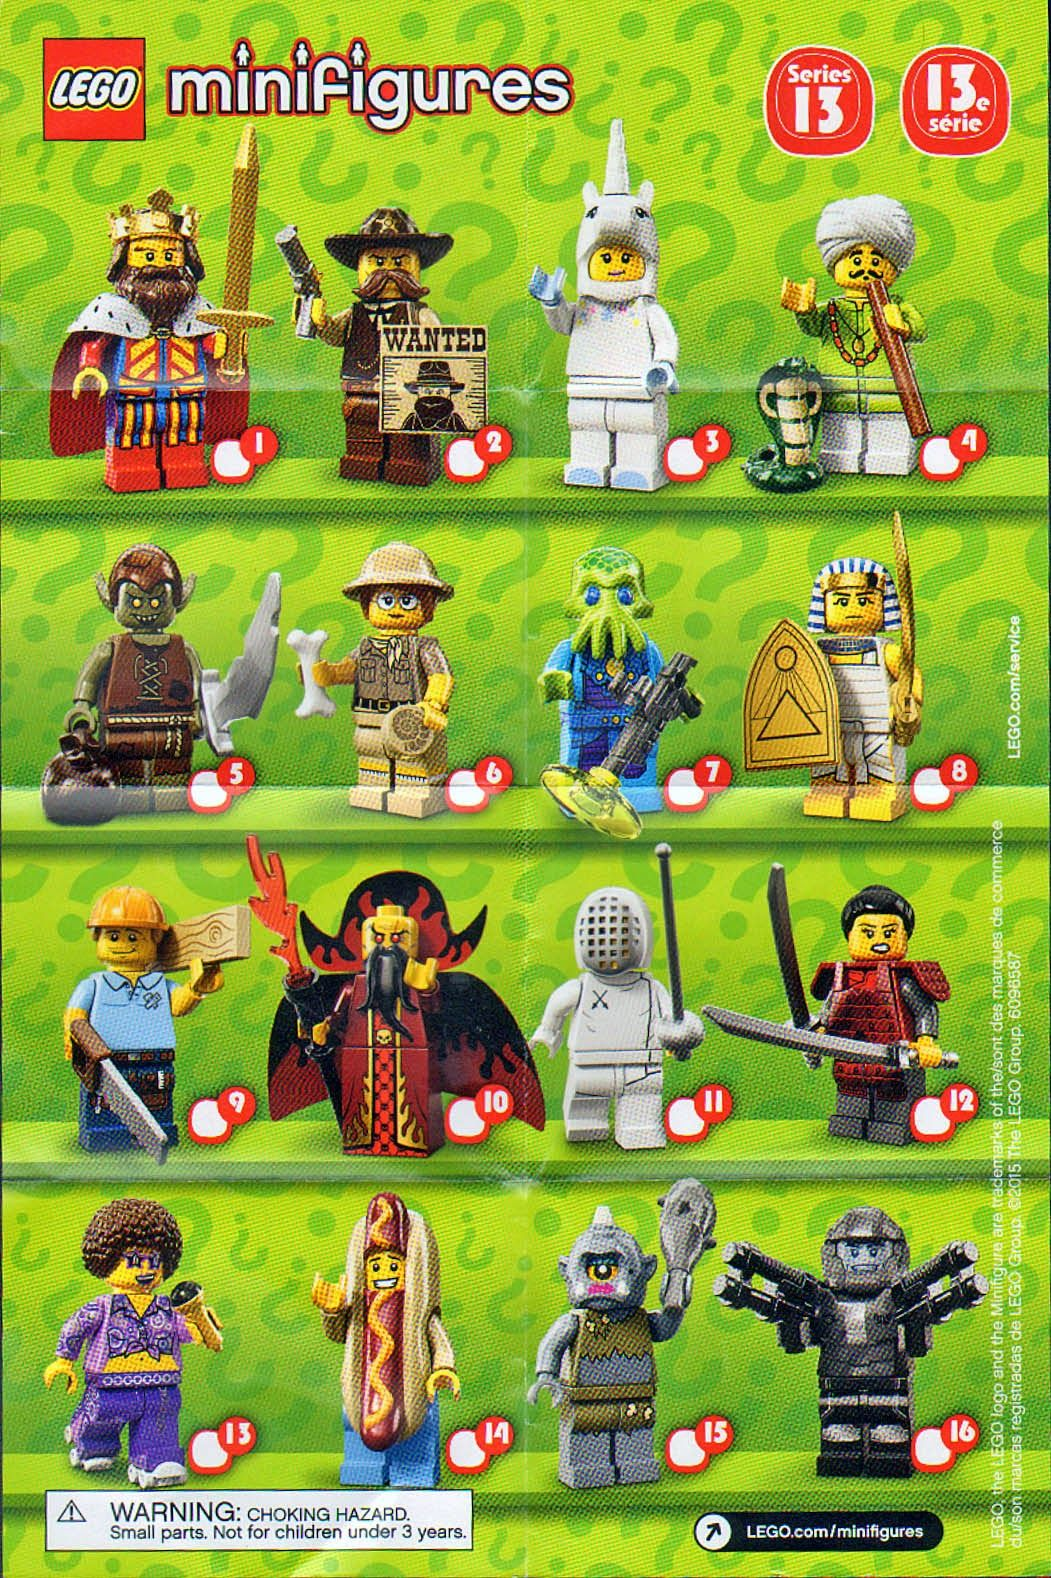 the minifigure collector lego minifigure series 1 13 movie simpson checklists and visual. Black Bedroom Furniture Sets. Home Design Ideas